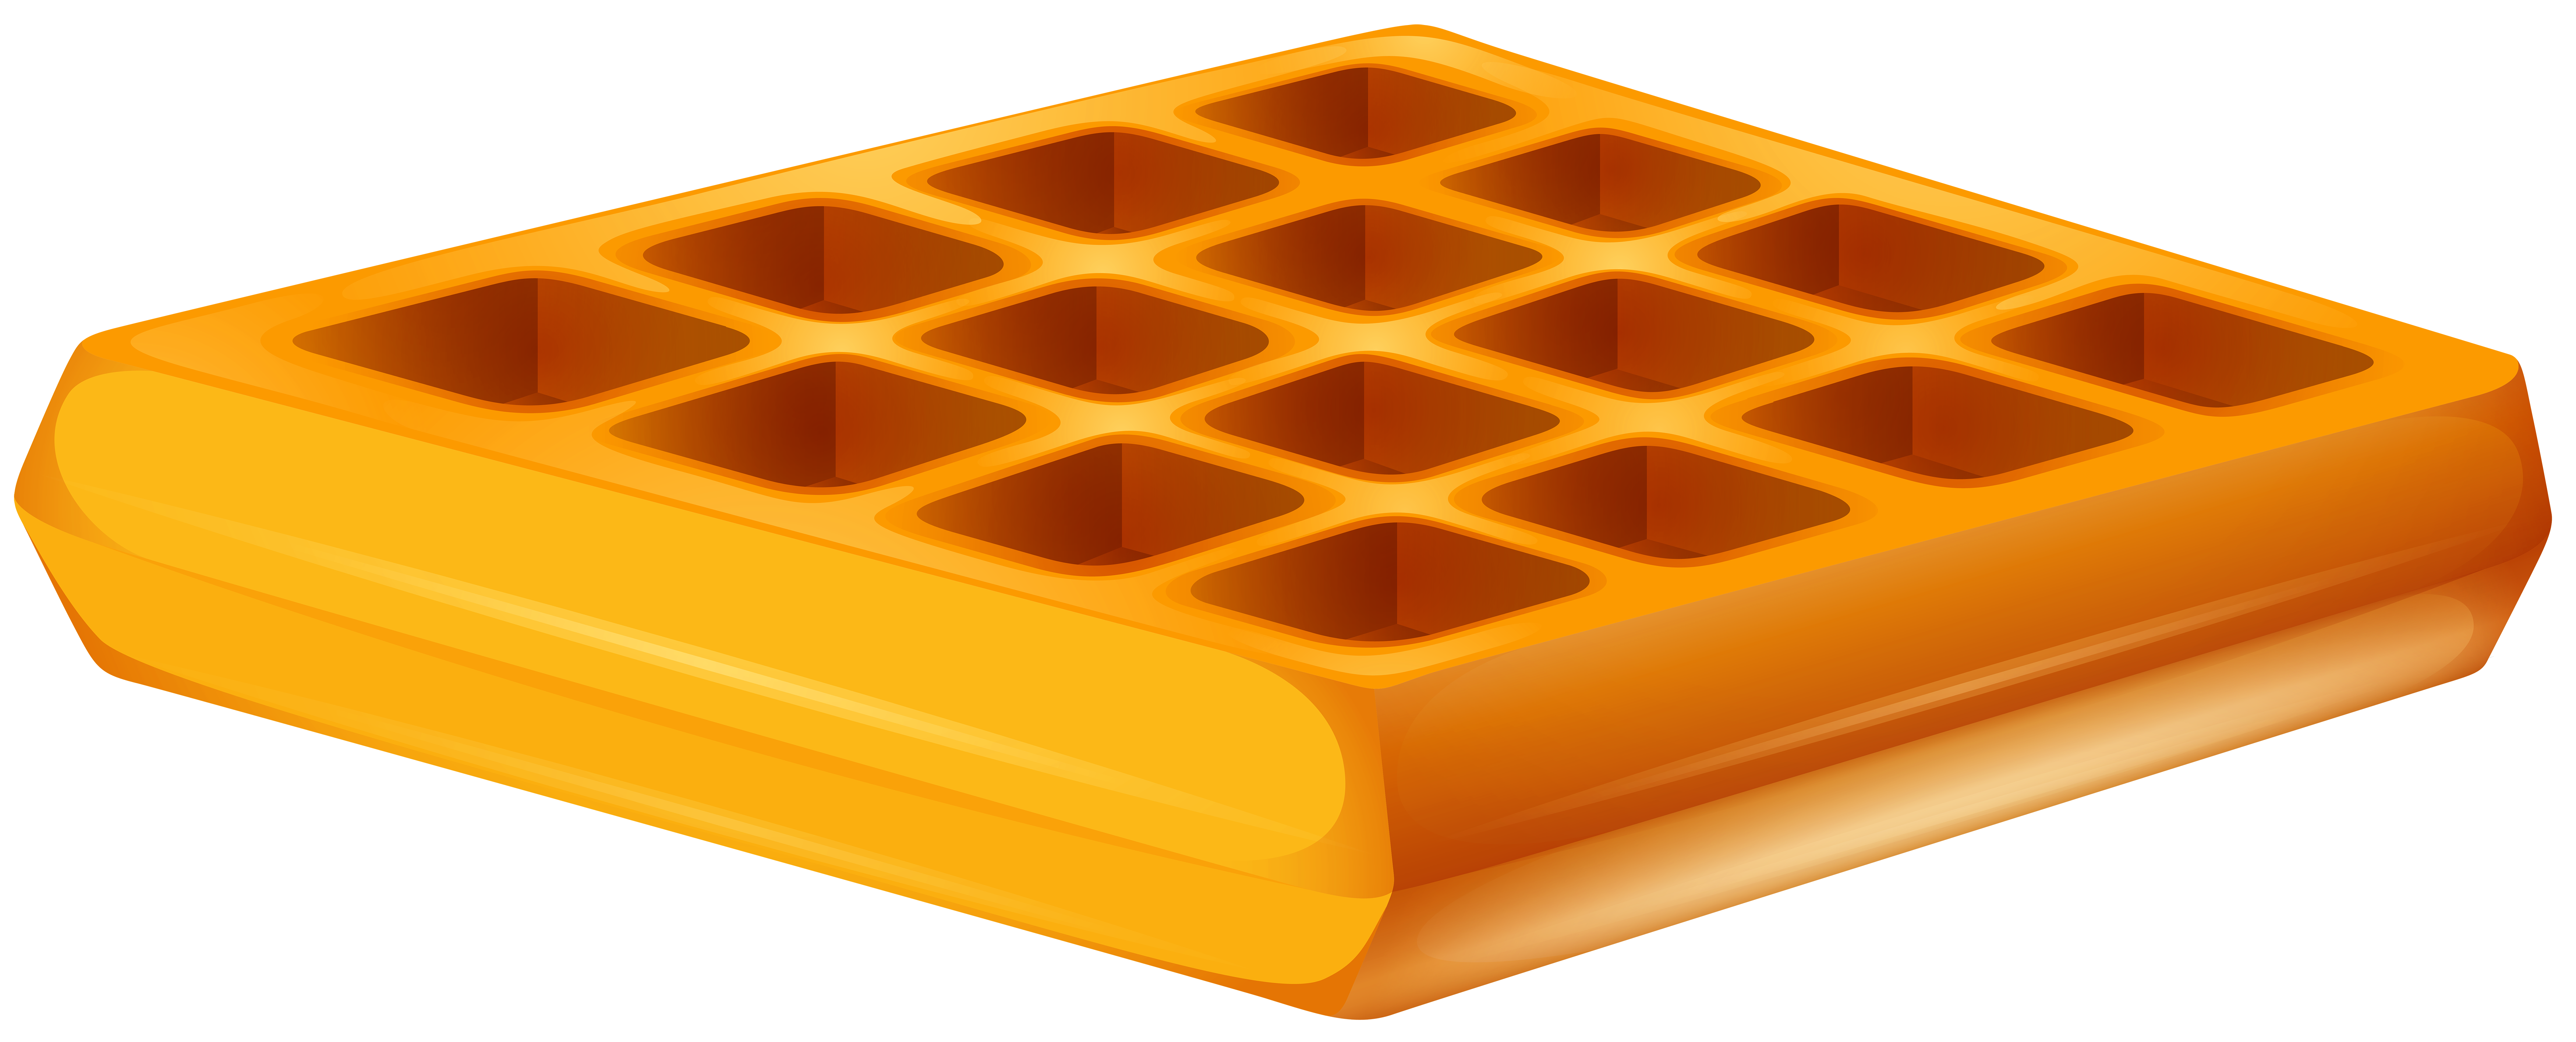 Waffle Transparent PNG Clip Art Image.